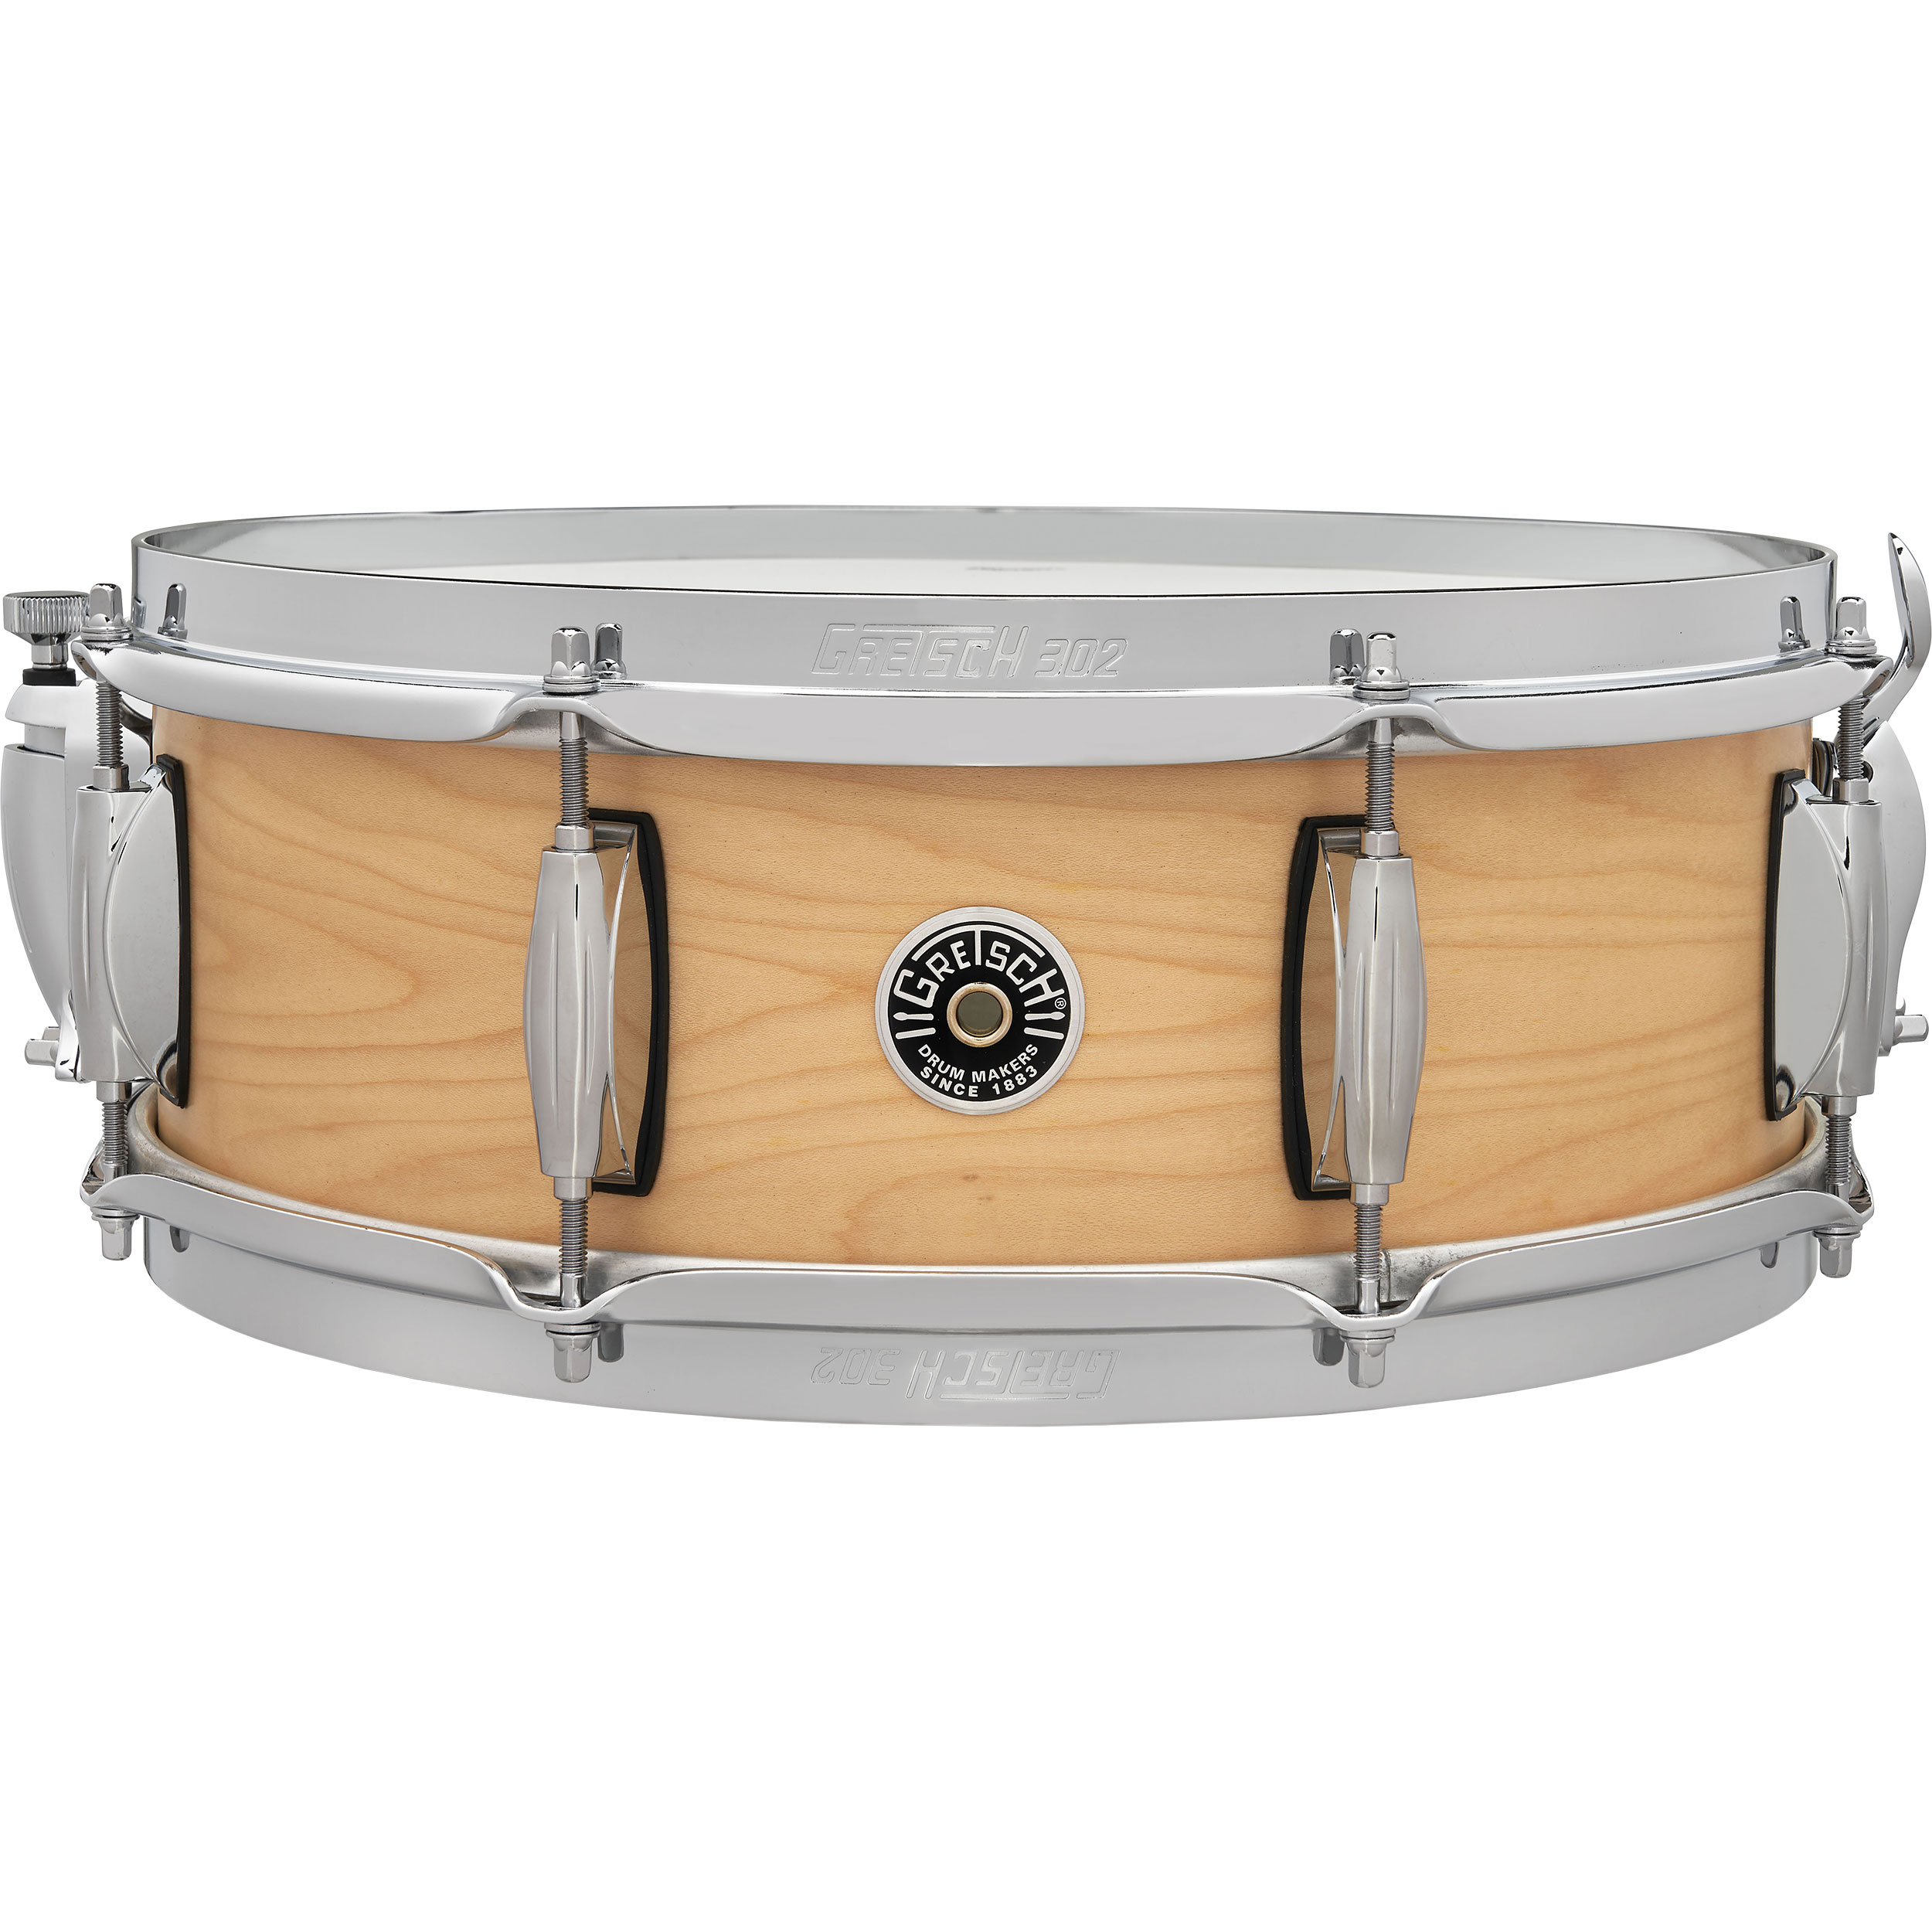 "Gretsch 5"" x 14"" Brooklyn Straight Satin Snare Drum"